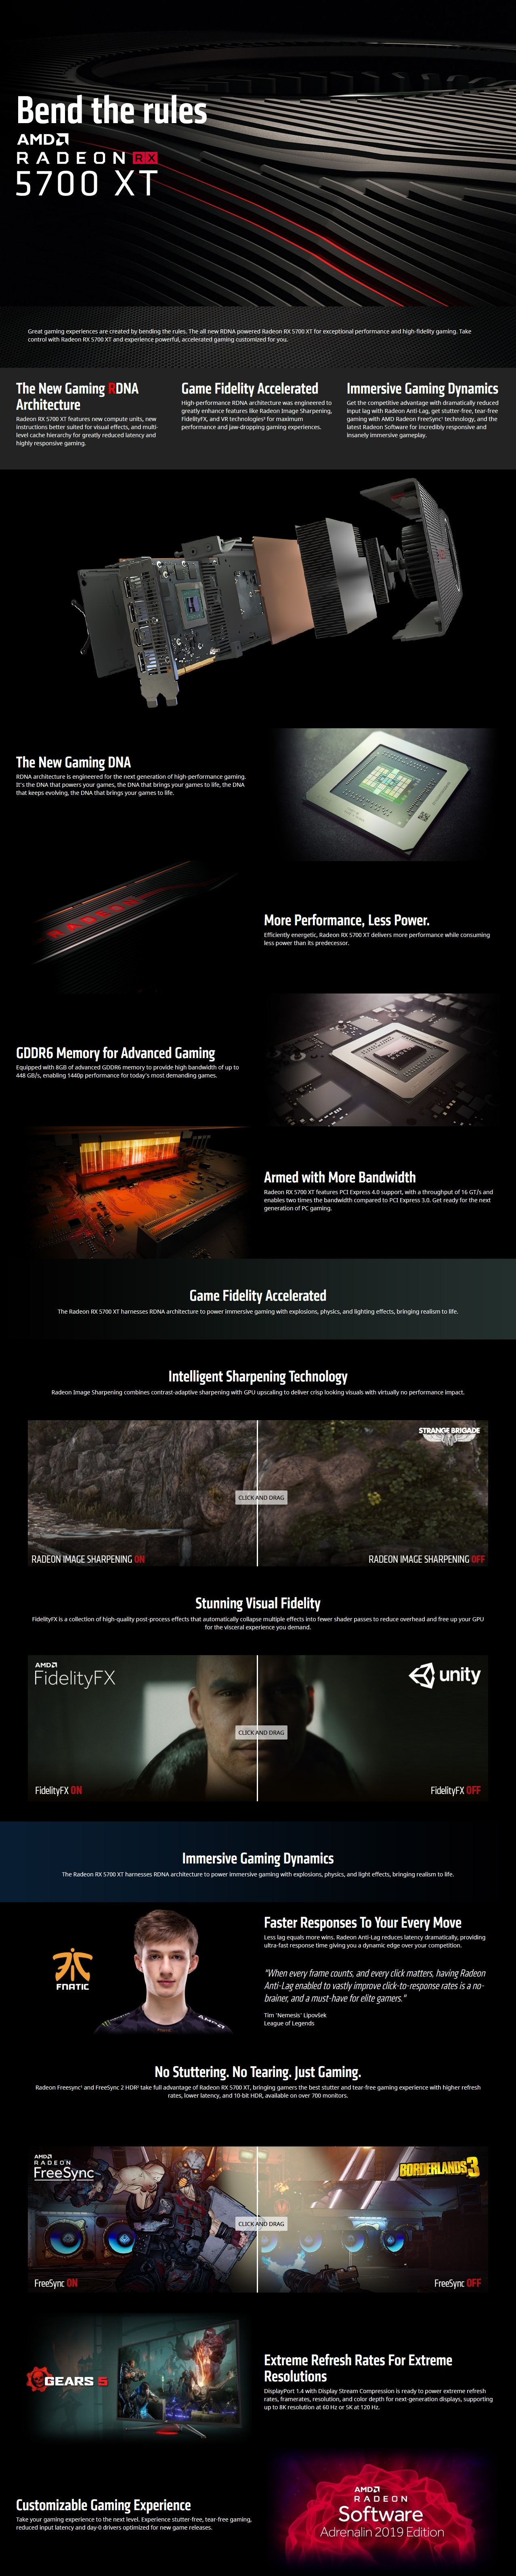 A large marketing image providing additional information about the product HIS Radeon RX 5700 XT 8GB GDDR6 - Additional alt info not provided